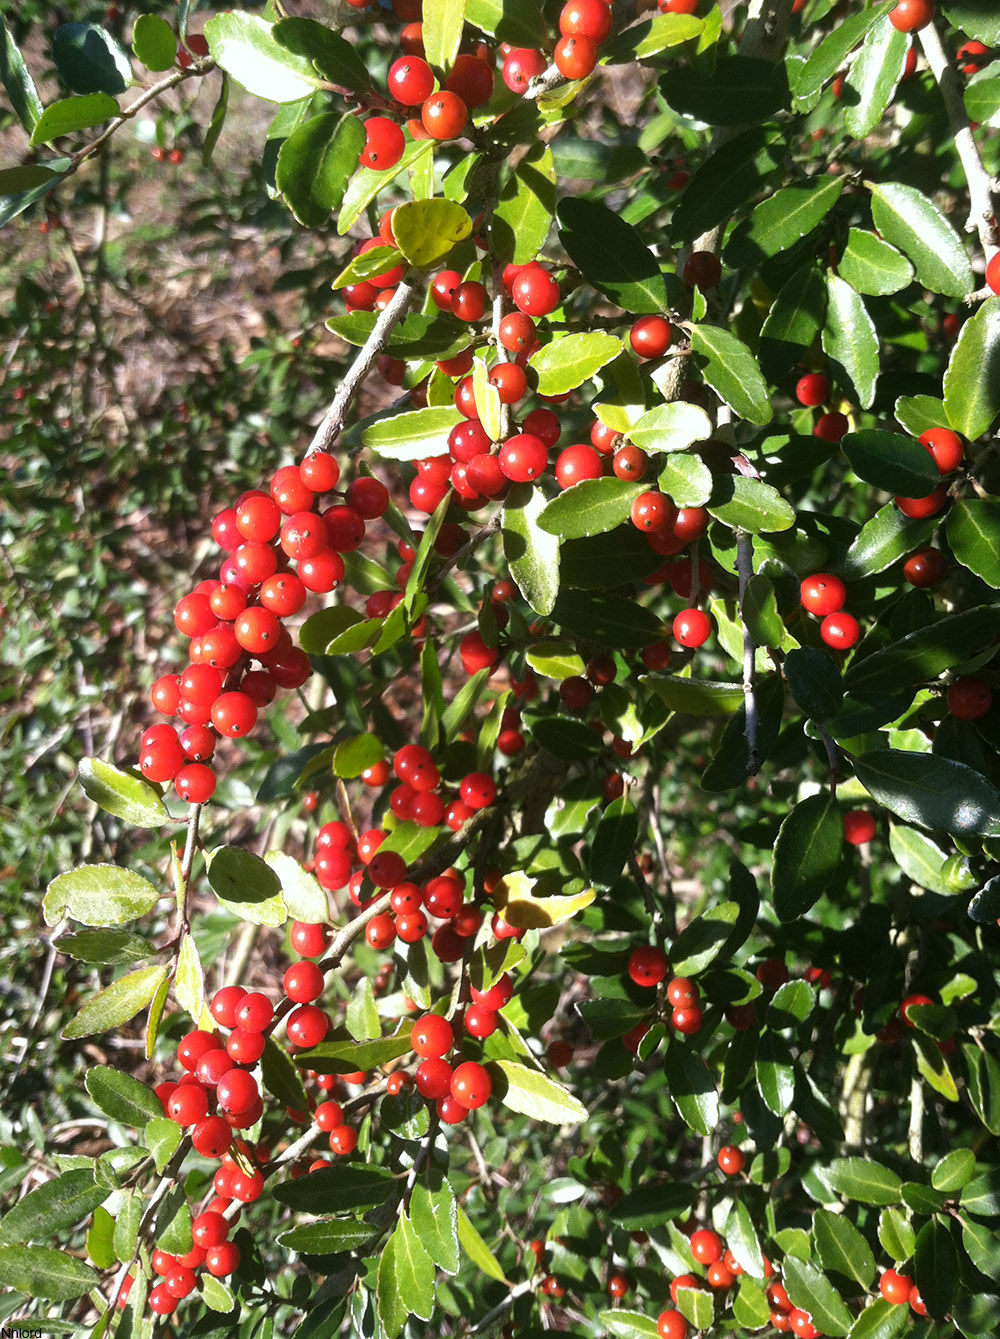 Yaupon holly, a holly species native to the Eastern U.S.